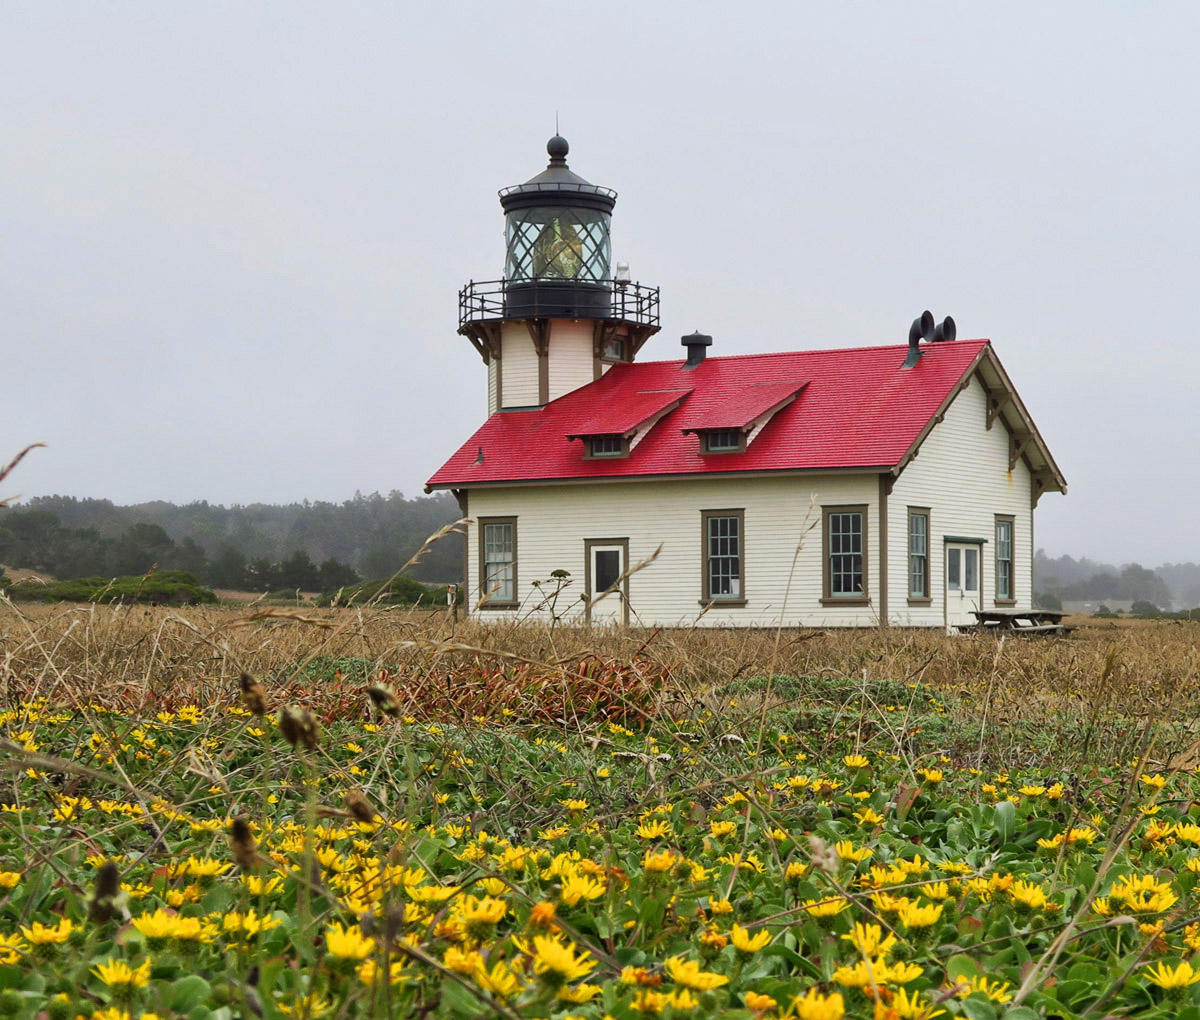 In between Fort Bragg and Mendocino is also the charming Point Cabrillo Light Station, built in 1906 and recently restored.